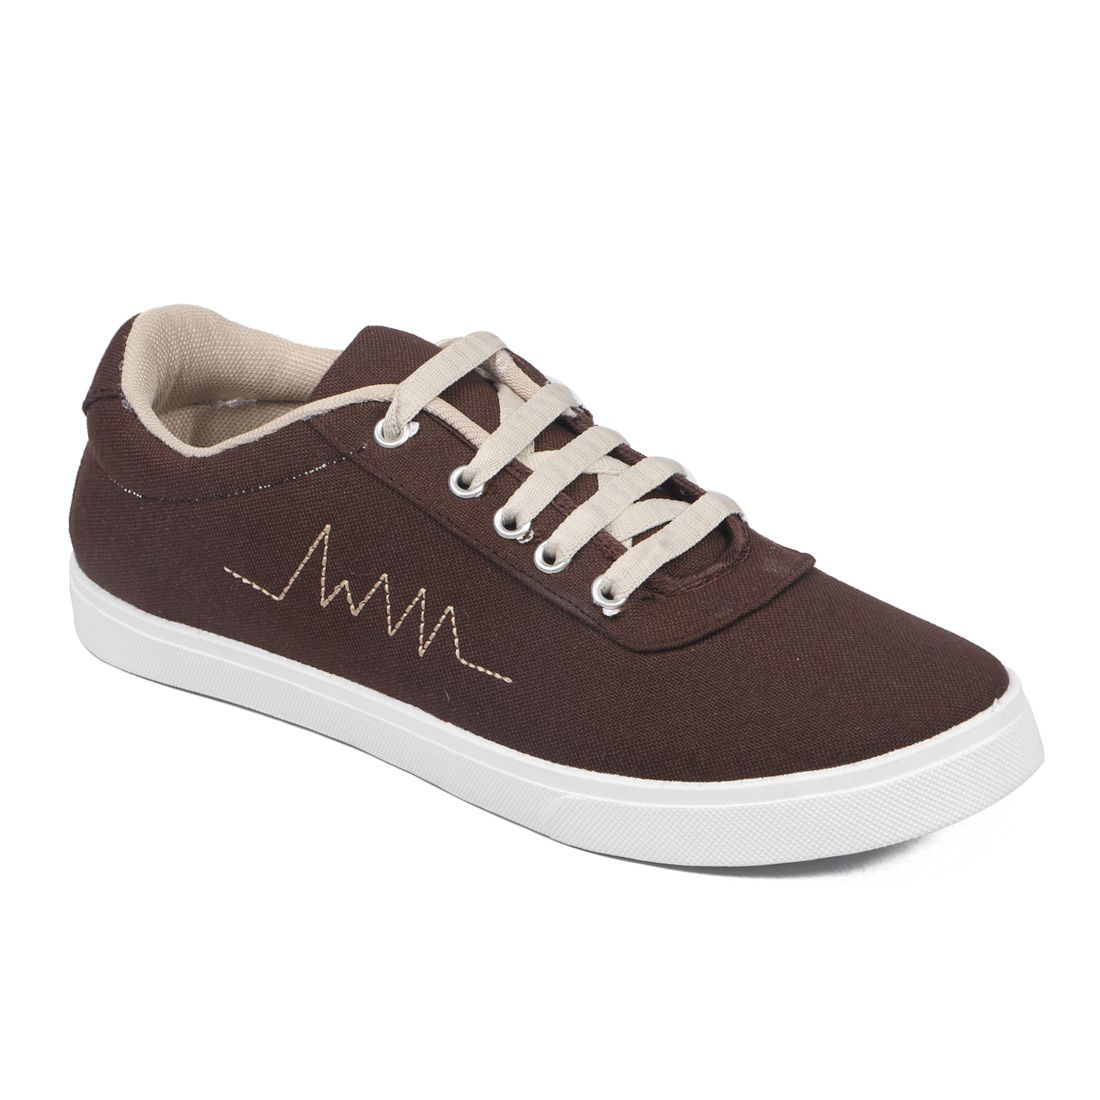 Asian Sneakers Brown Casual Shoes buy cheap countdown package cheap sale 2014 unisex discount buy discount get to buy Dt5rncVKyU